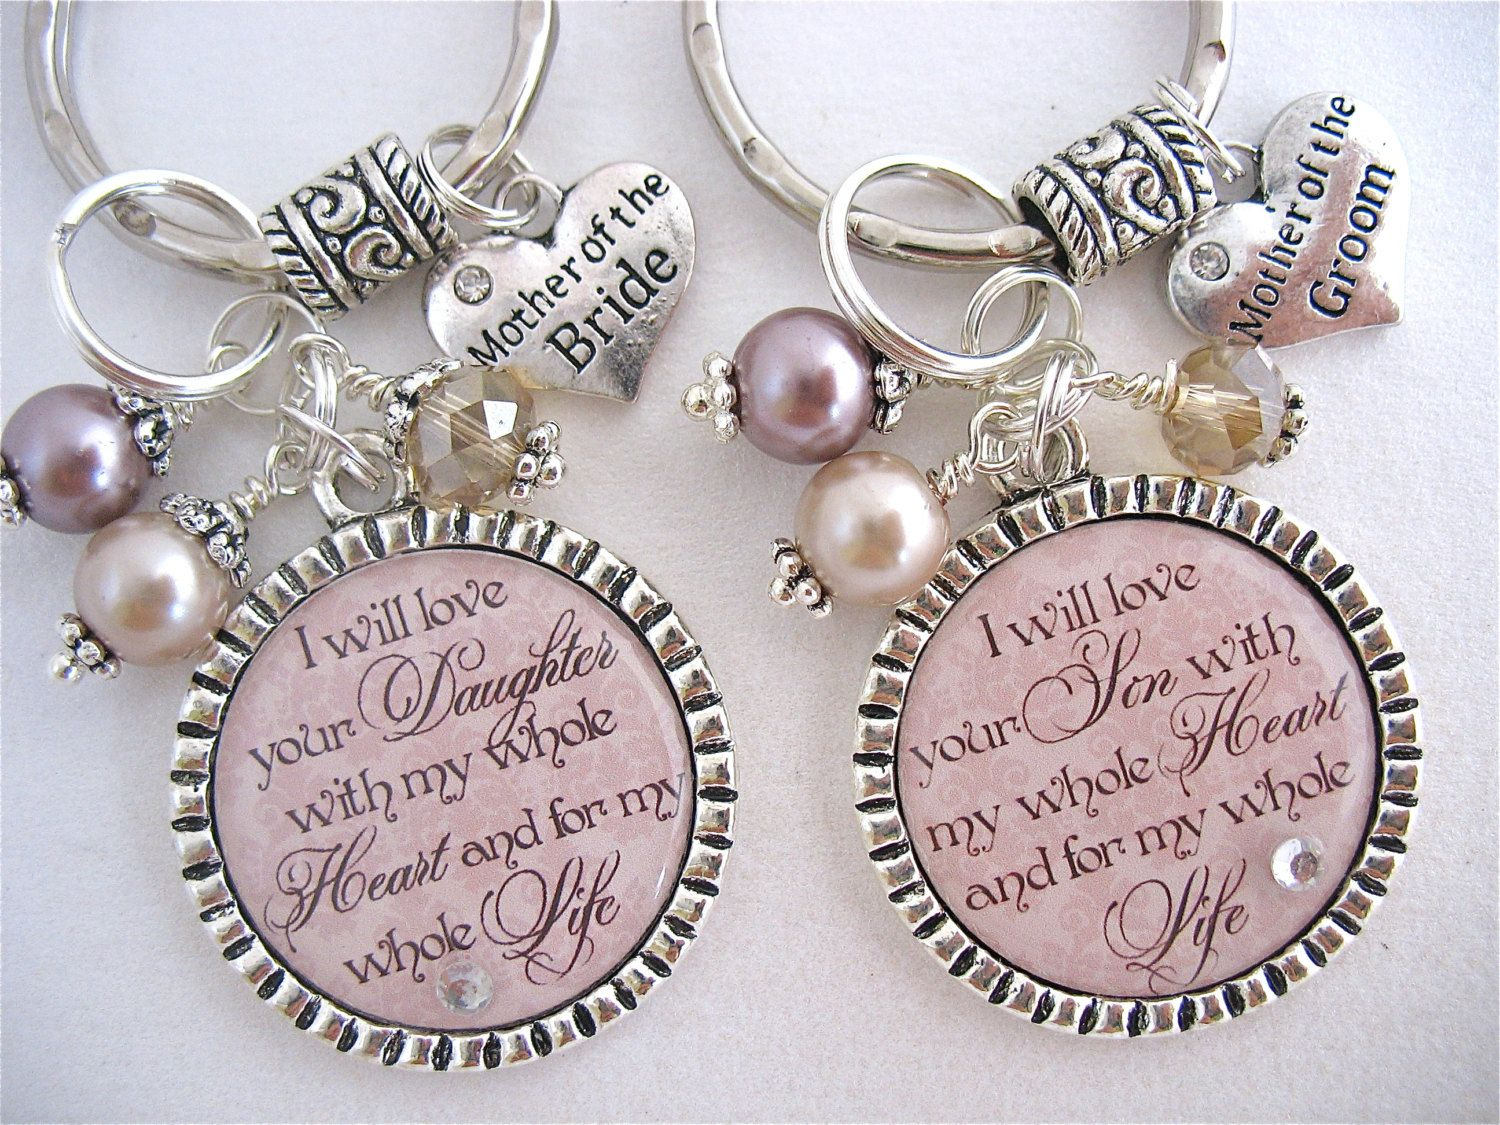 Handmade Wedding Gifts For Bride And Groom: Personalized Wedding Jewelry For MOTHER Of The BRIDE